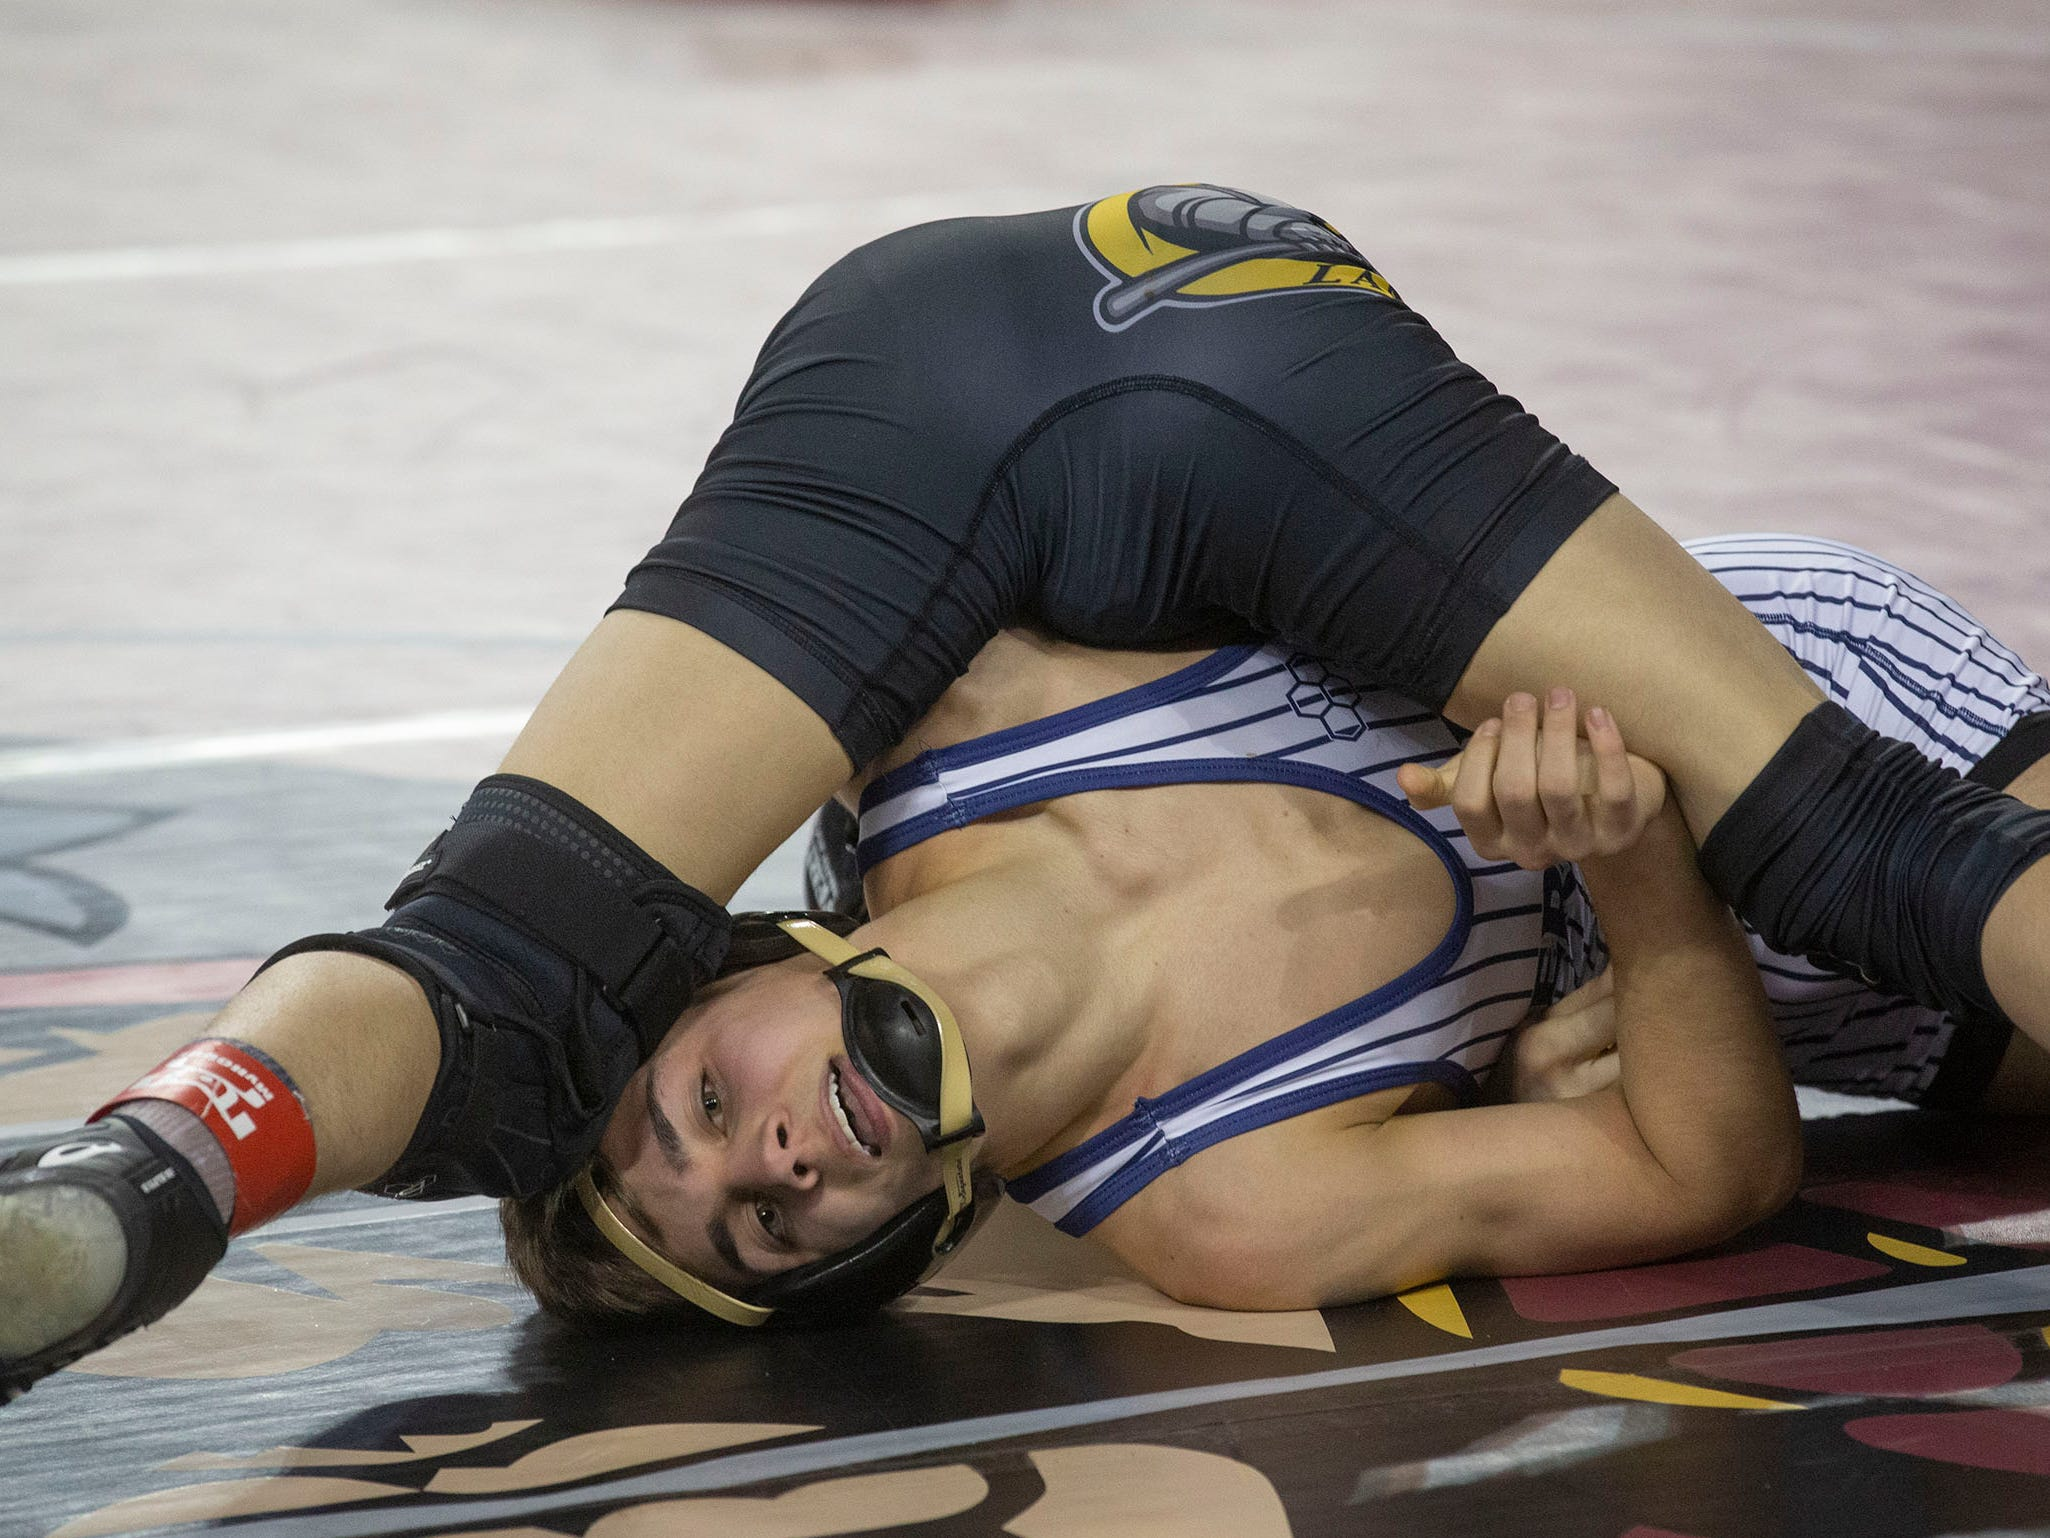 St. John Vianney's Dean Peterson gets back points against  St. Augustine Prep's  D'Amani Almodovar in their 113. lbs. bout.  NJSIAA State Wrestling opening rounds in Atlantic City, Thursday February 28, 2019